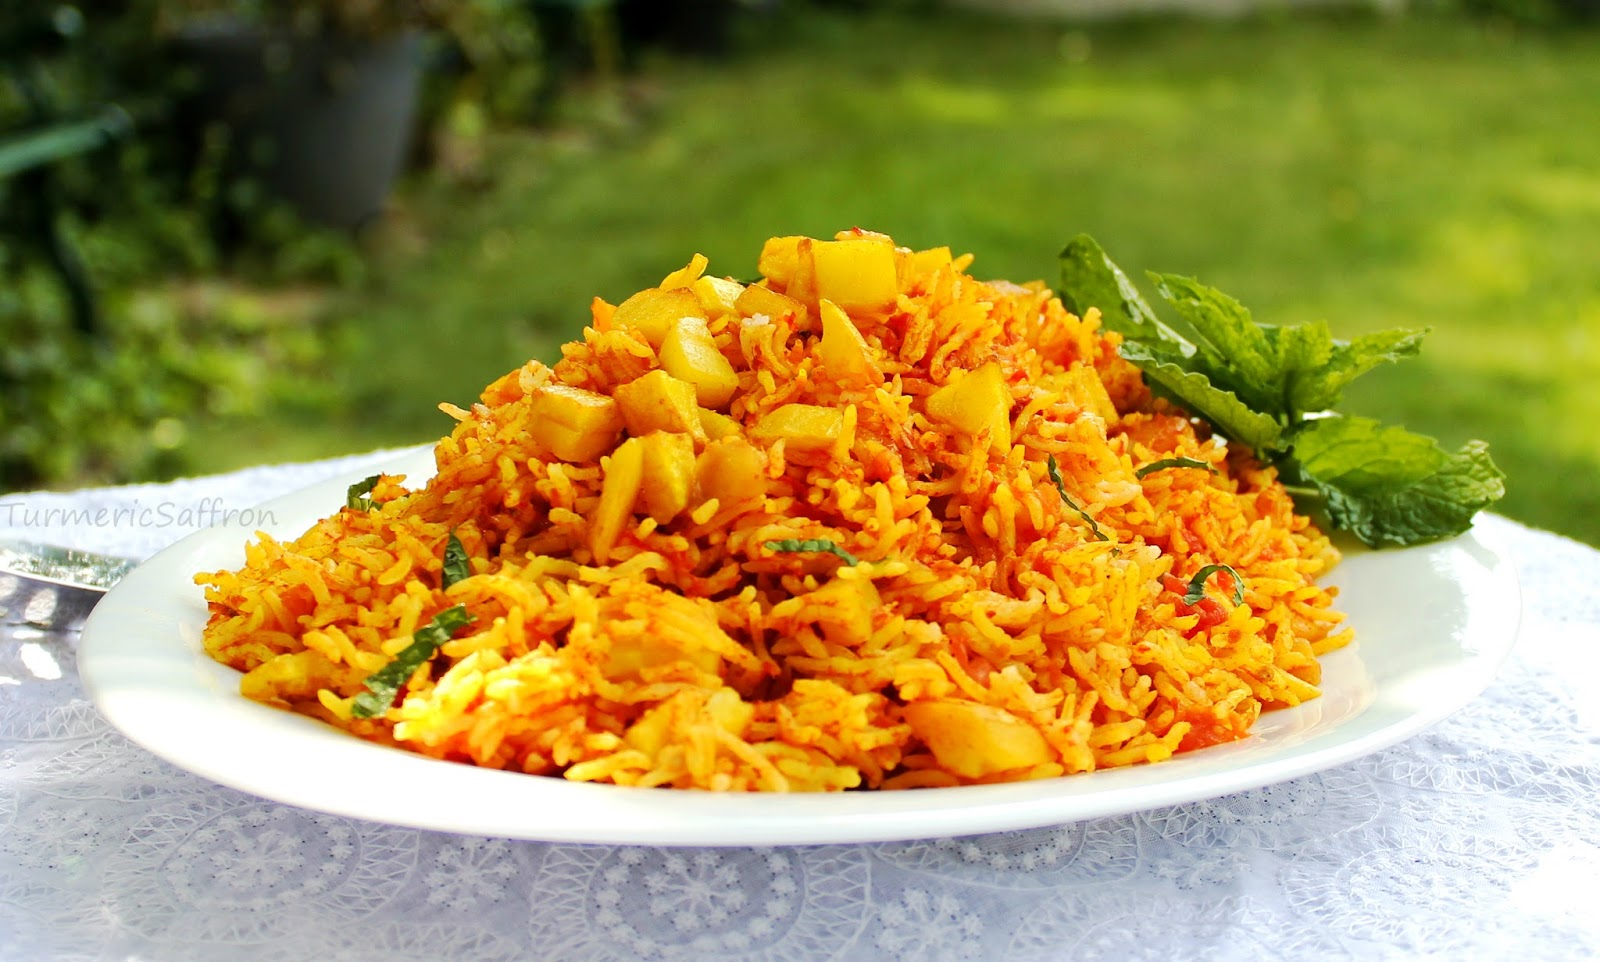 Turmeric saffron estamboli polow persian tomato rice with potatoes - Potatoes choose depending food want prepare ...